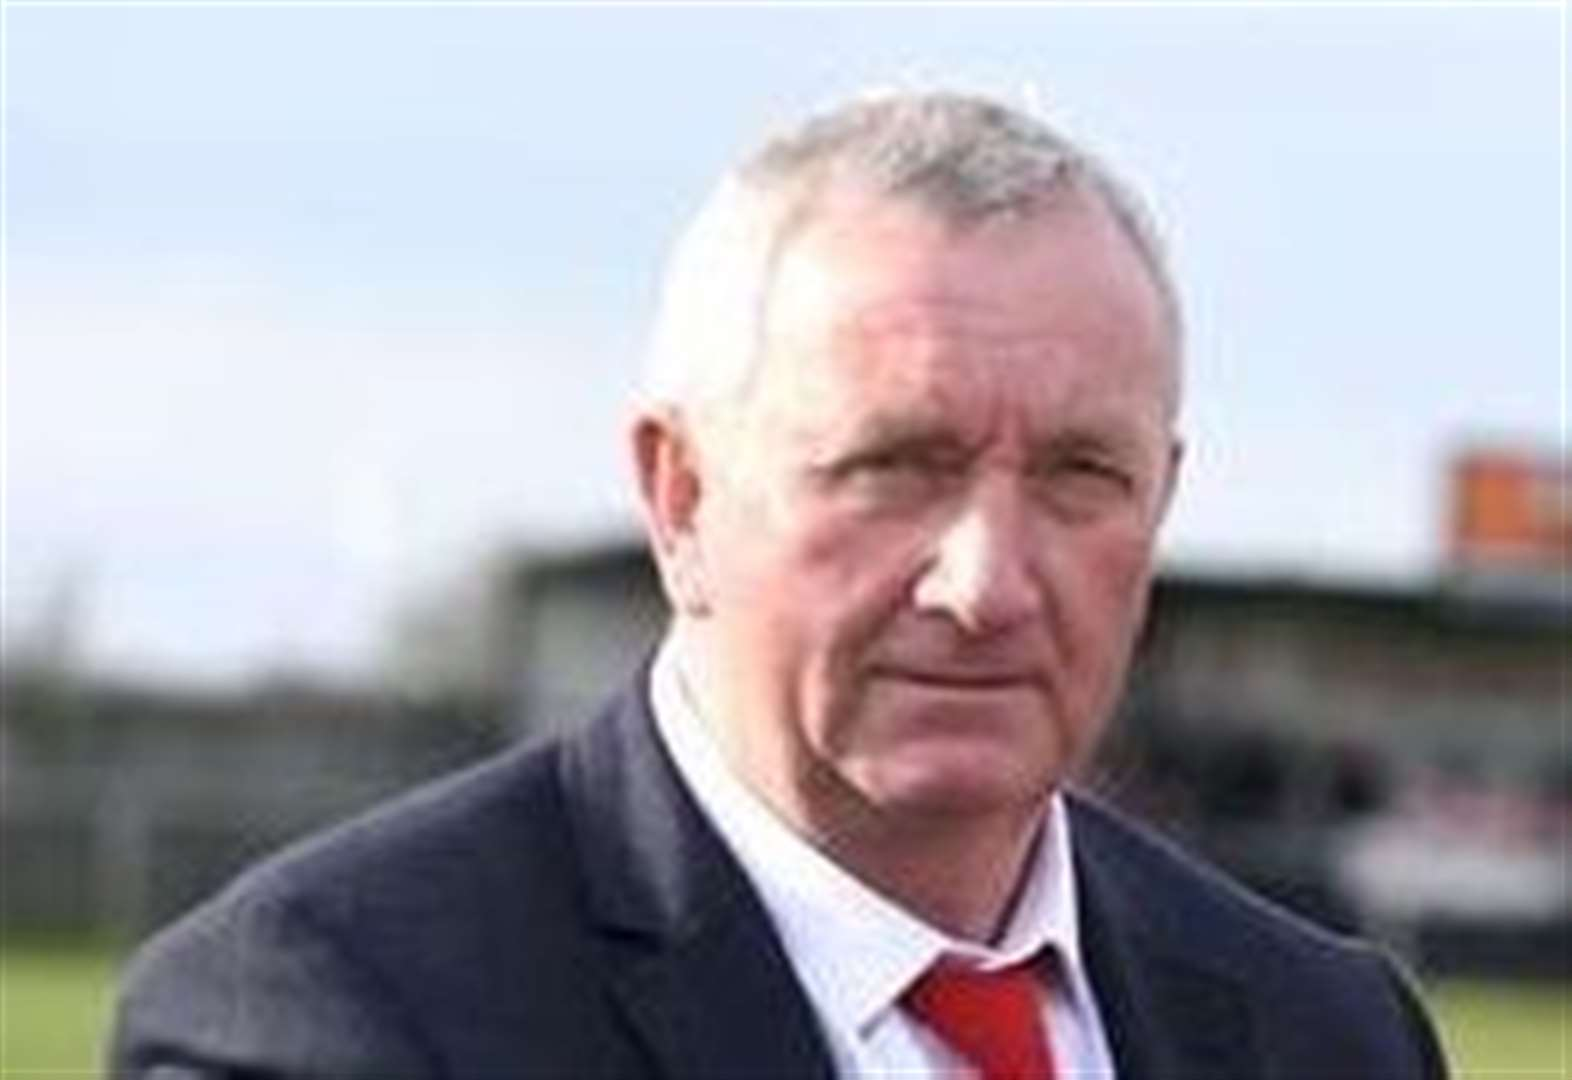 Uncertainty over football club chairman's position